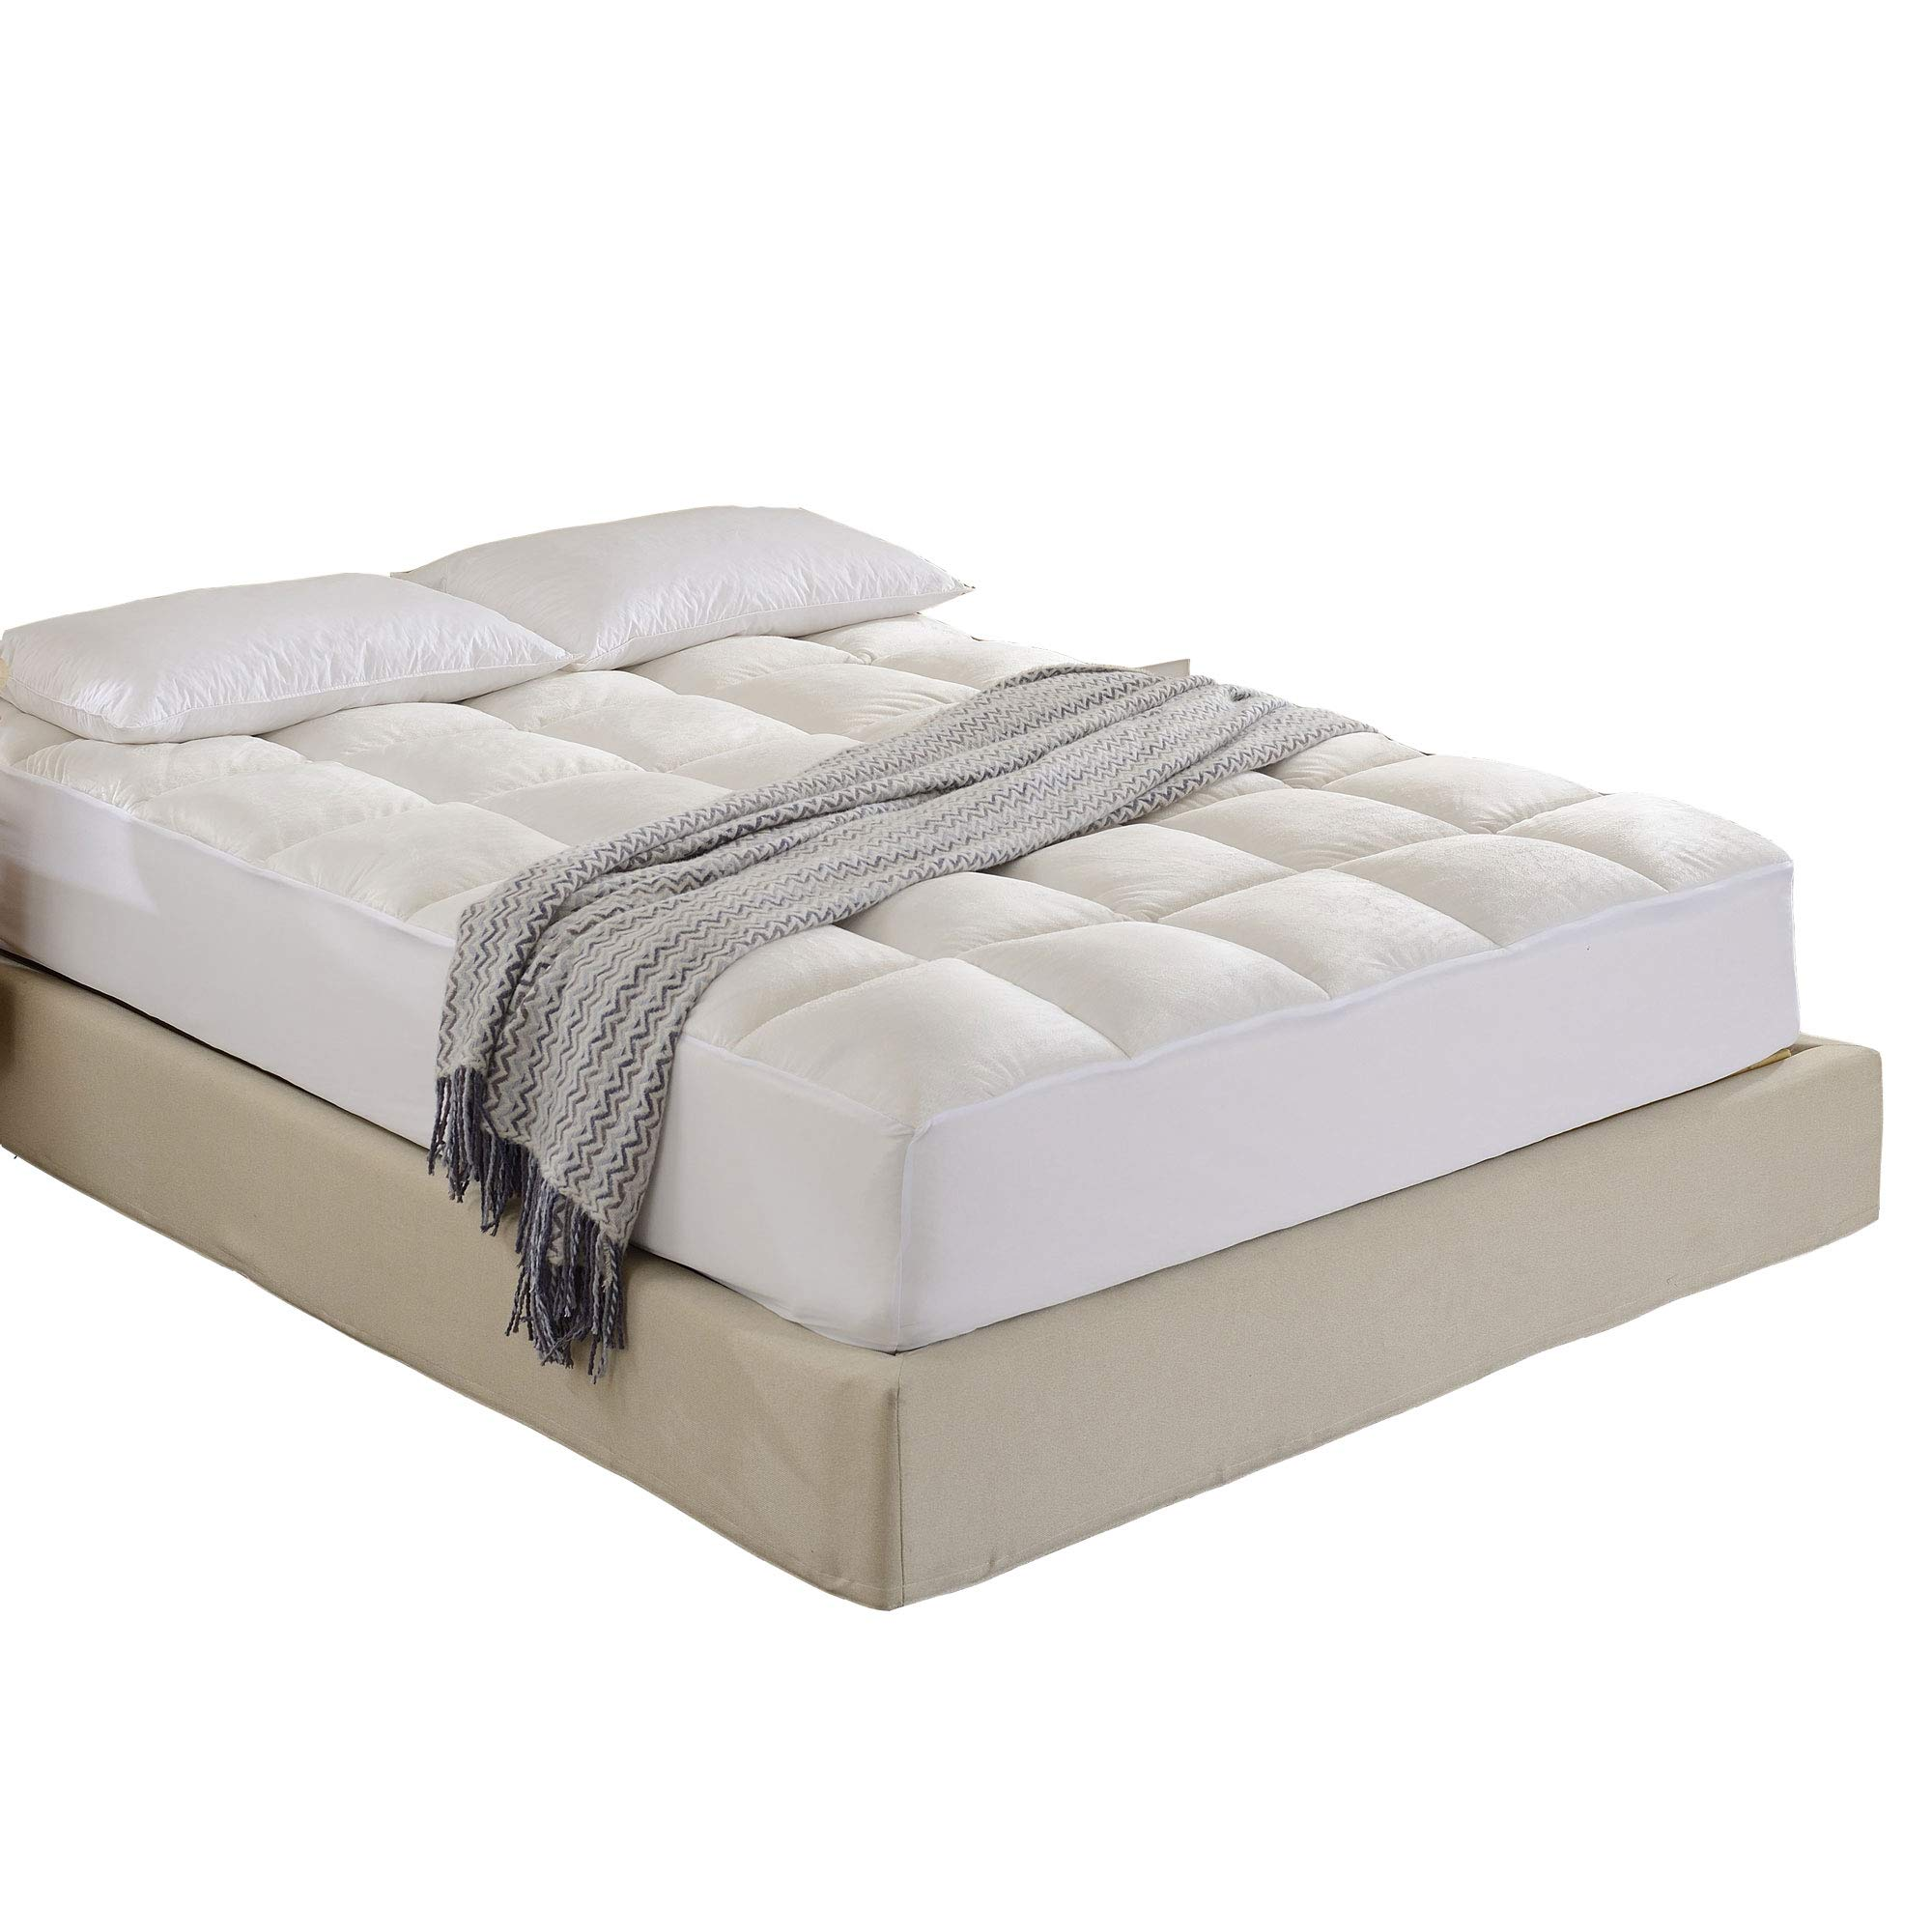 Cheer Collection Super Luxurious Ultra Soft Overfilled Microplush Fitted Mattress Topper - Full